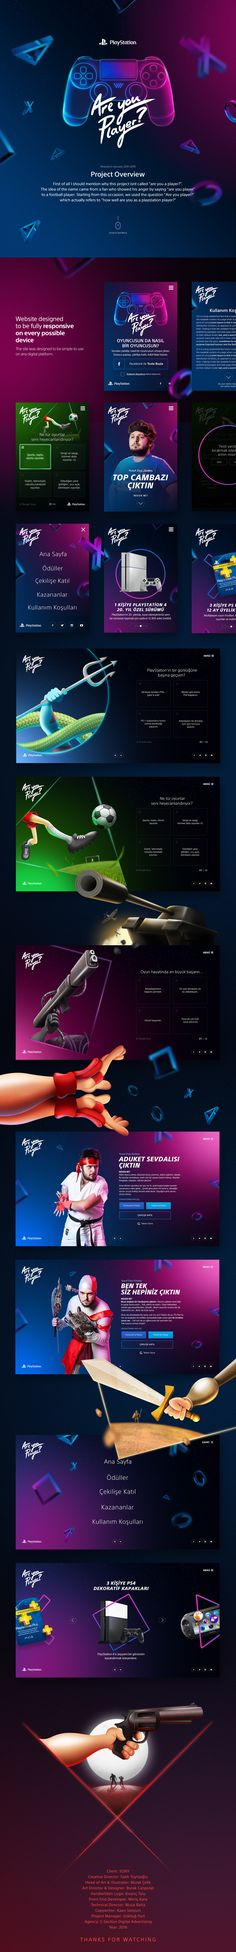 Sony Playstation Are You Player? on Behance